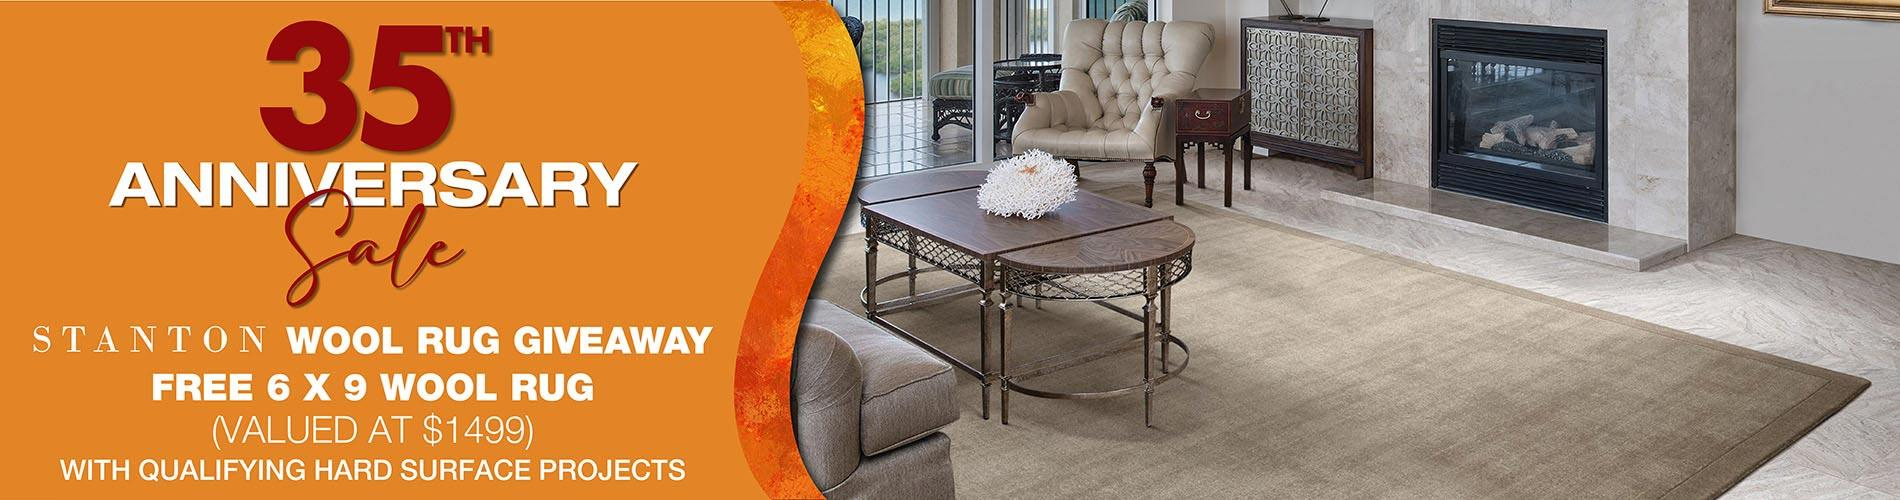 35th Anniversary sale. Stanton wool rug giveaway. Free 6 x 9 wool rug with qualifying hard surface projects. Valued at $1499.